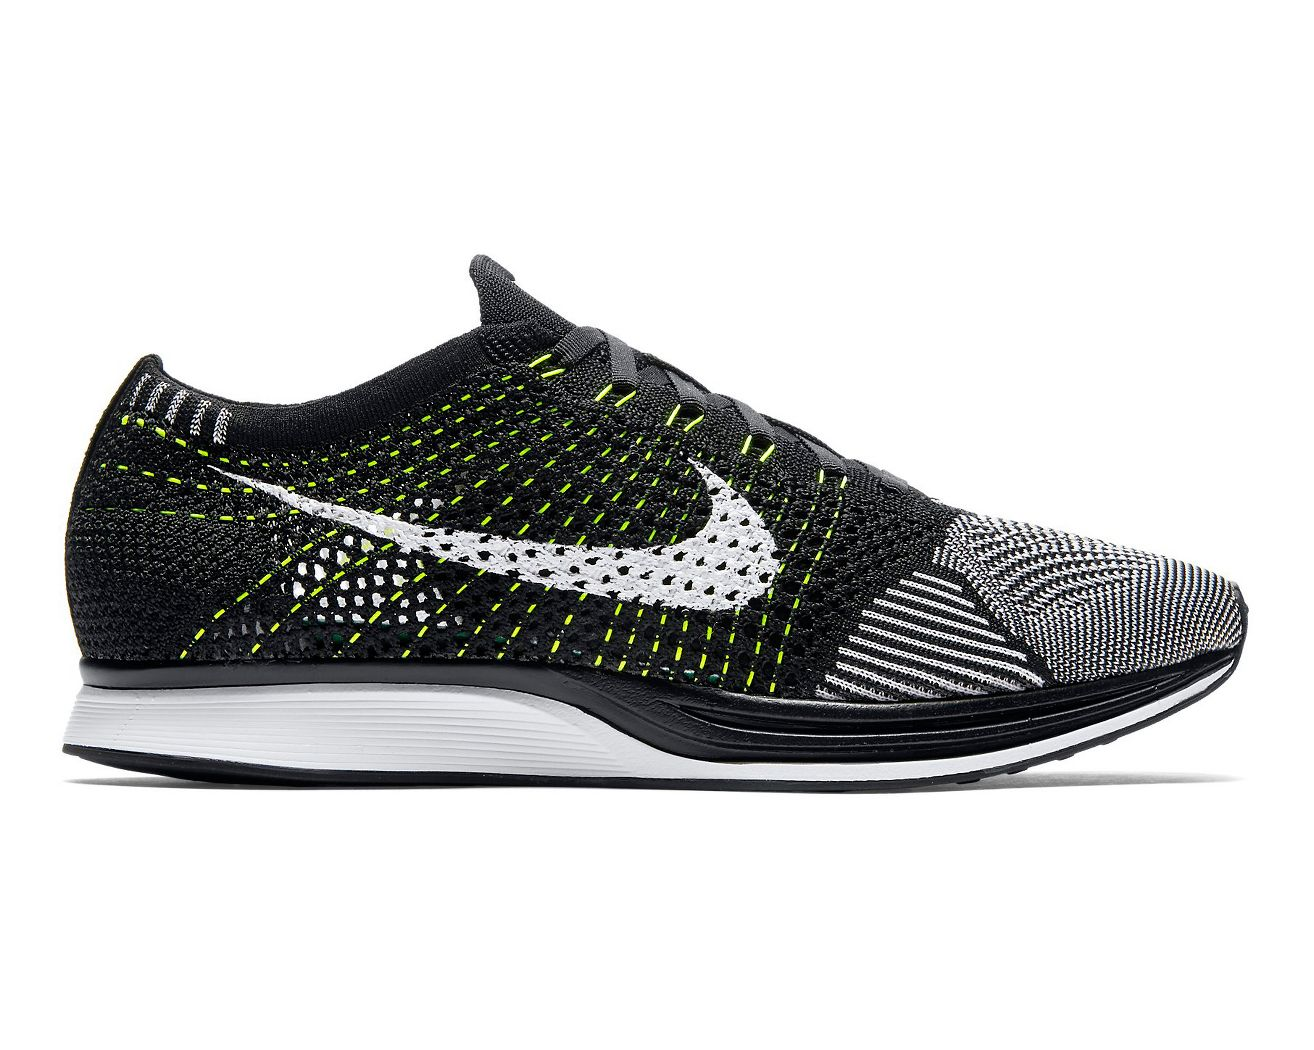 new style dccd4 d5ff8 ... site de air max pas chere - Nike Flyknit Racer Racing Shoe at Road  Runner Sports ...